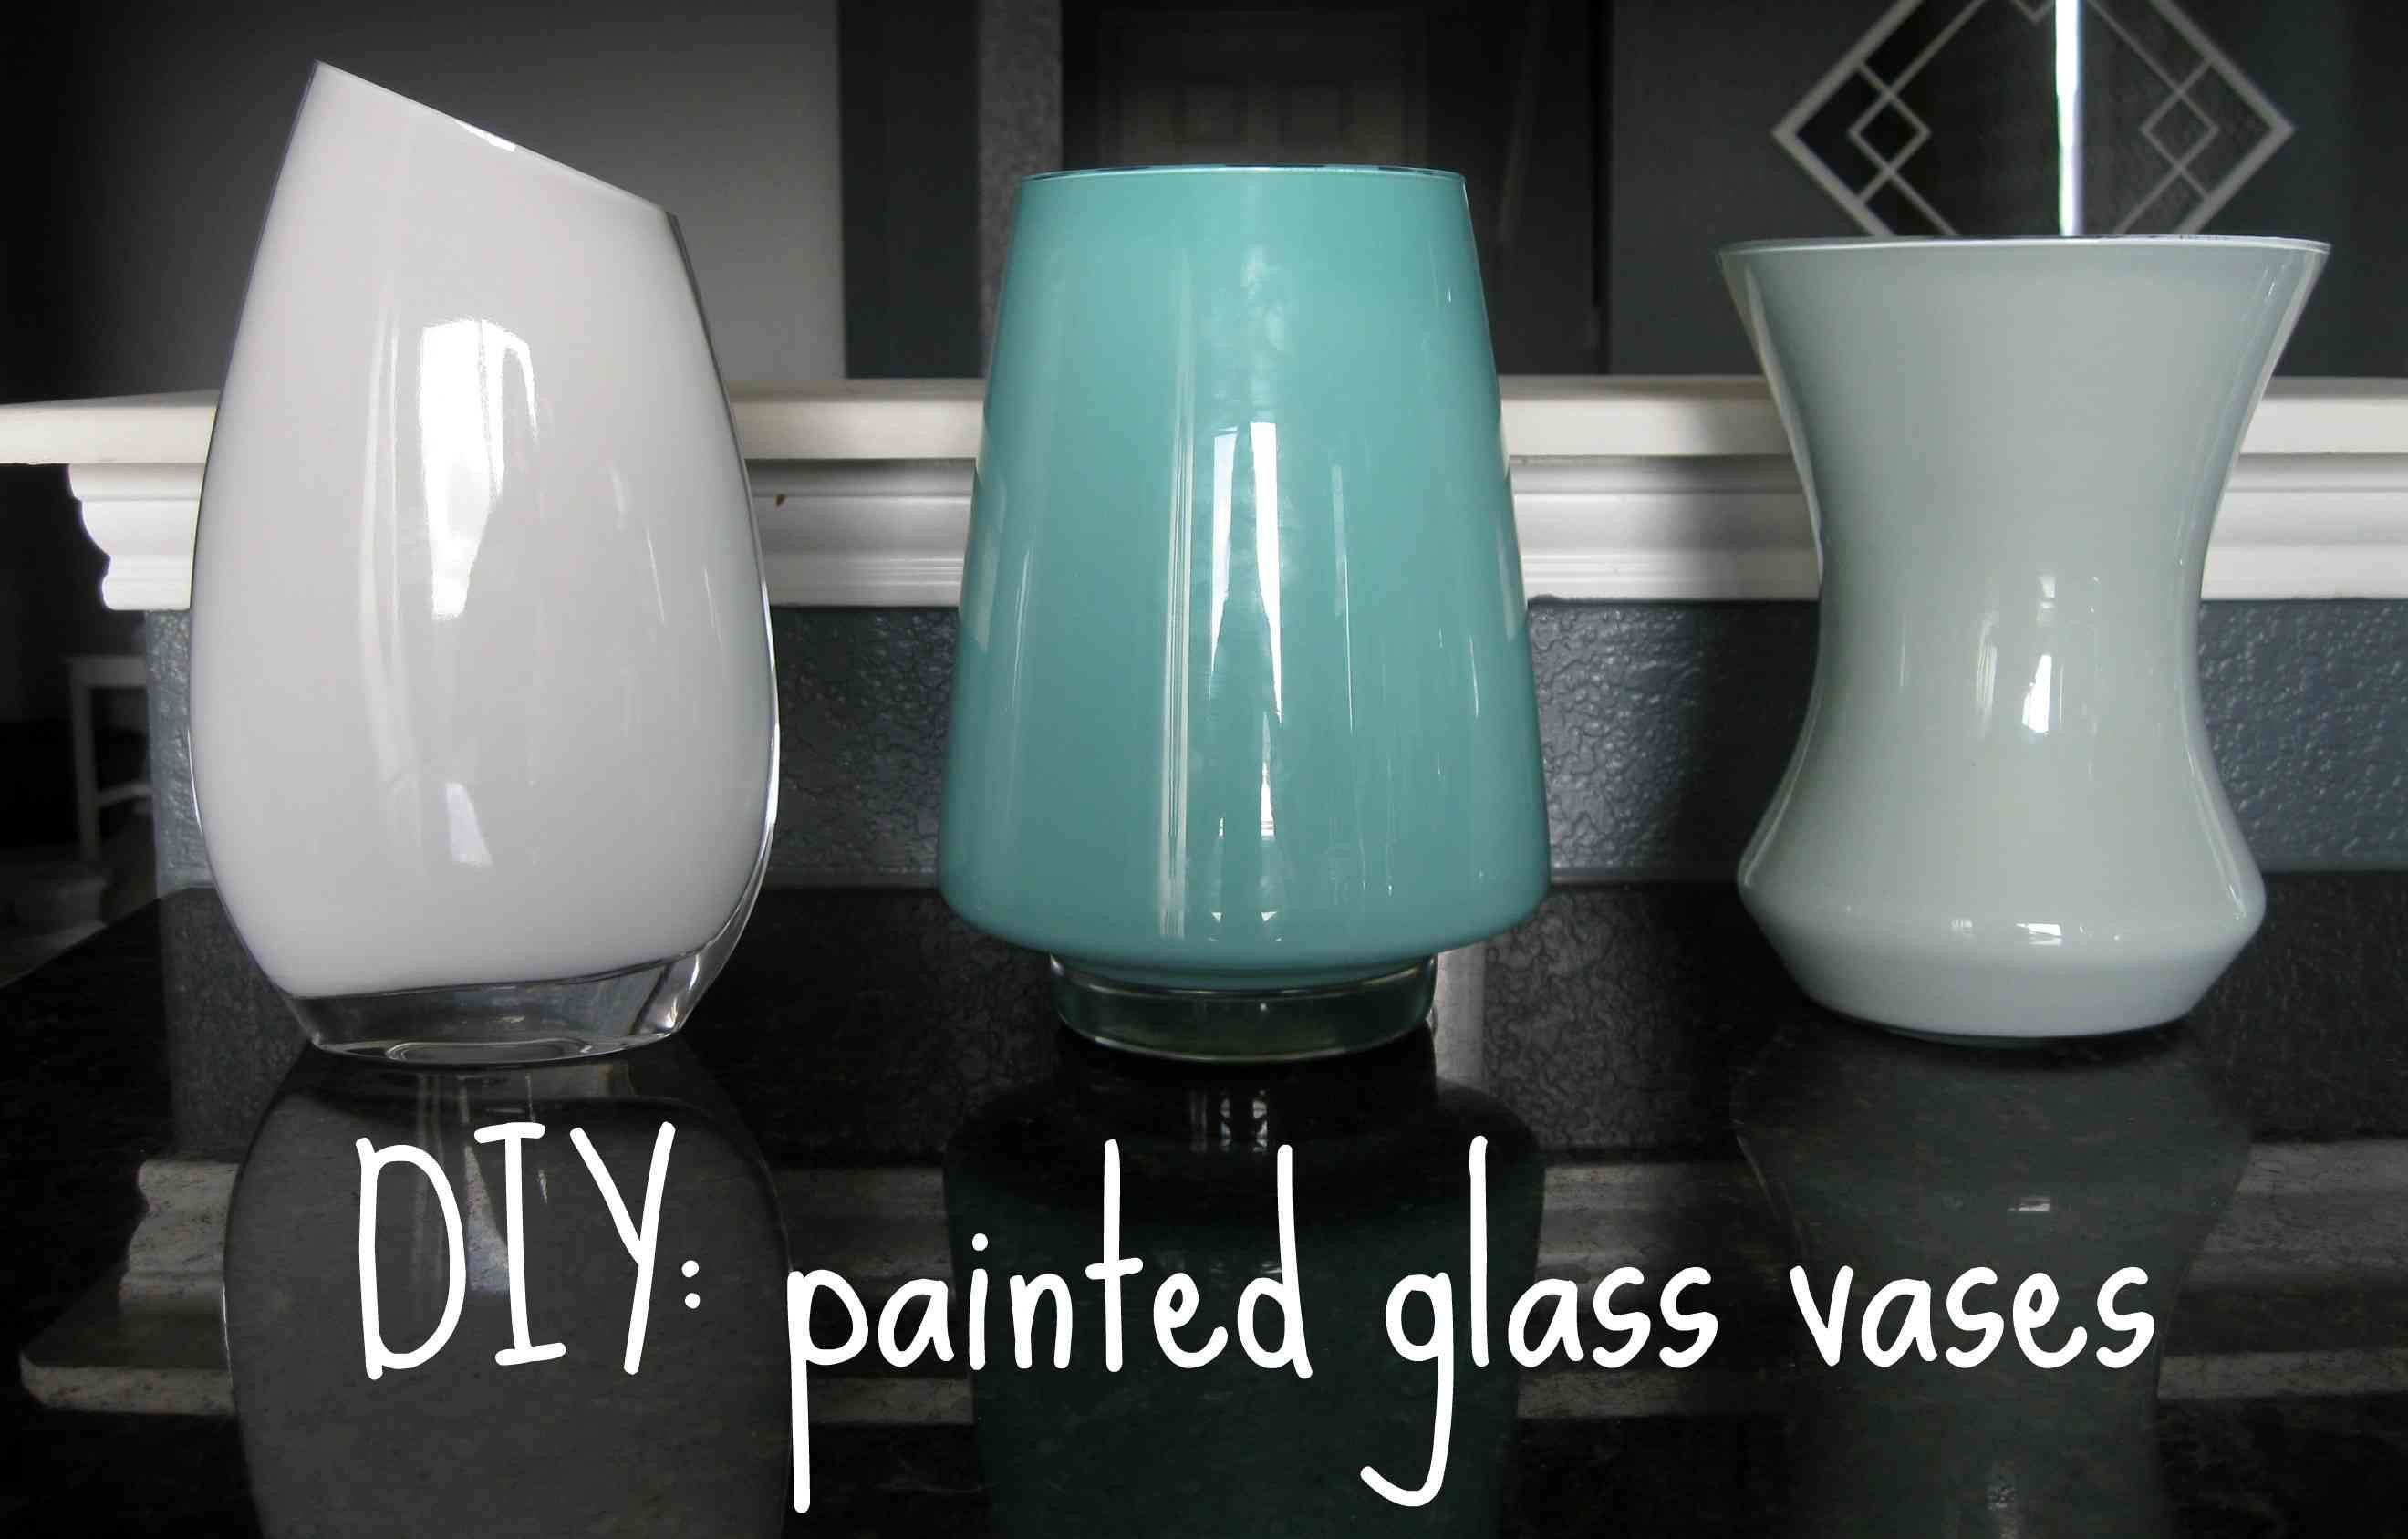 colored glass vases and bowls of 23 blue crystal vase the weekly world for diy painted glass vasesh vases how to paint vasesi 0d via conejita info